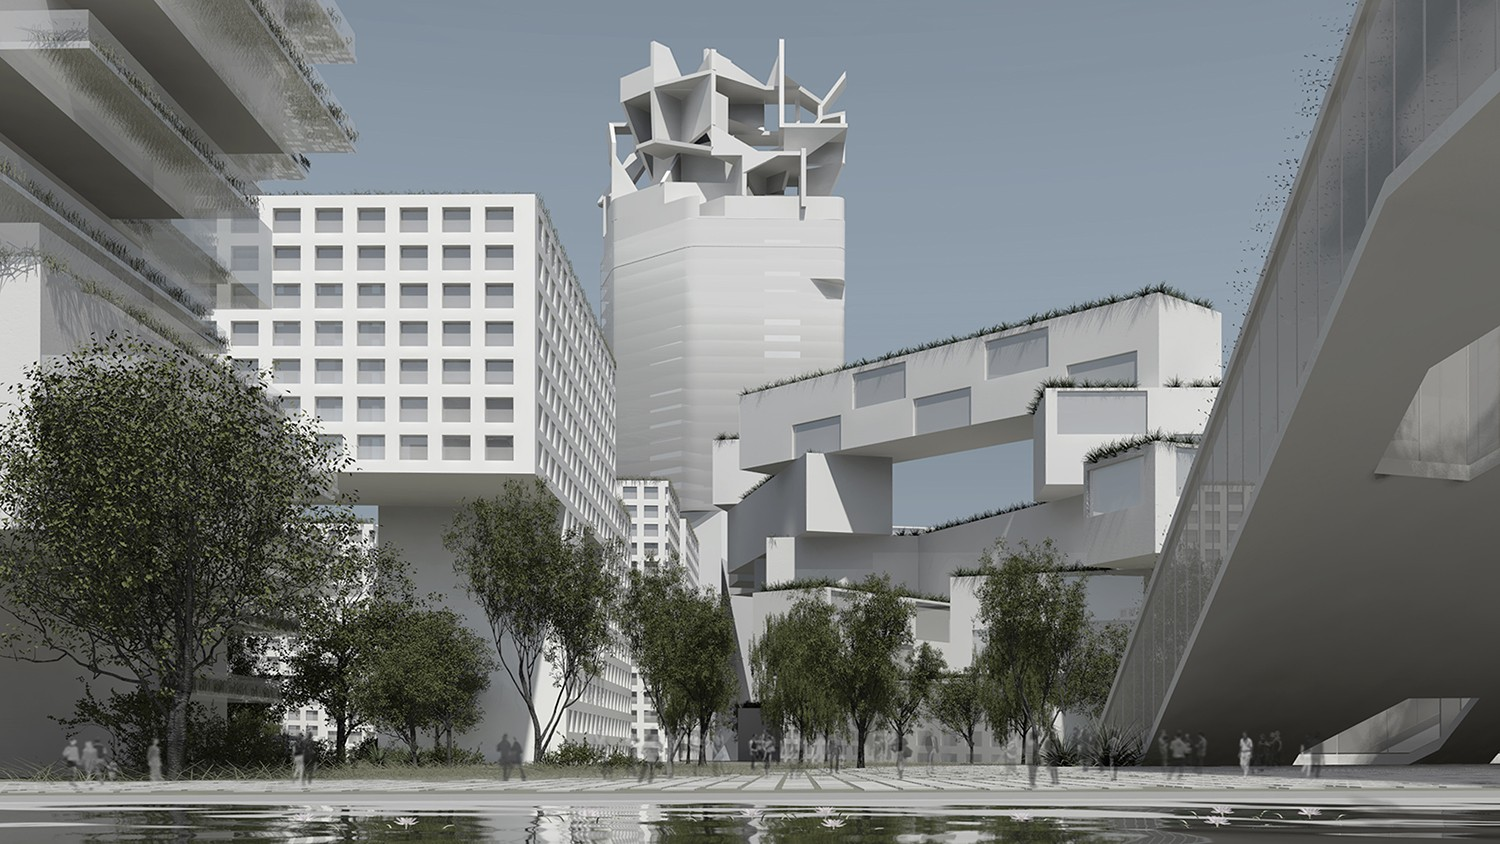 https://s3.us-east-2.amazonaws.com/steven-holl/uploads/projects/project-images/StevenHollArchitects_Dongguan_20130303_AllTypes07_edited_WH.jpg